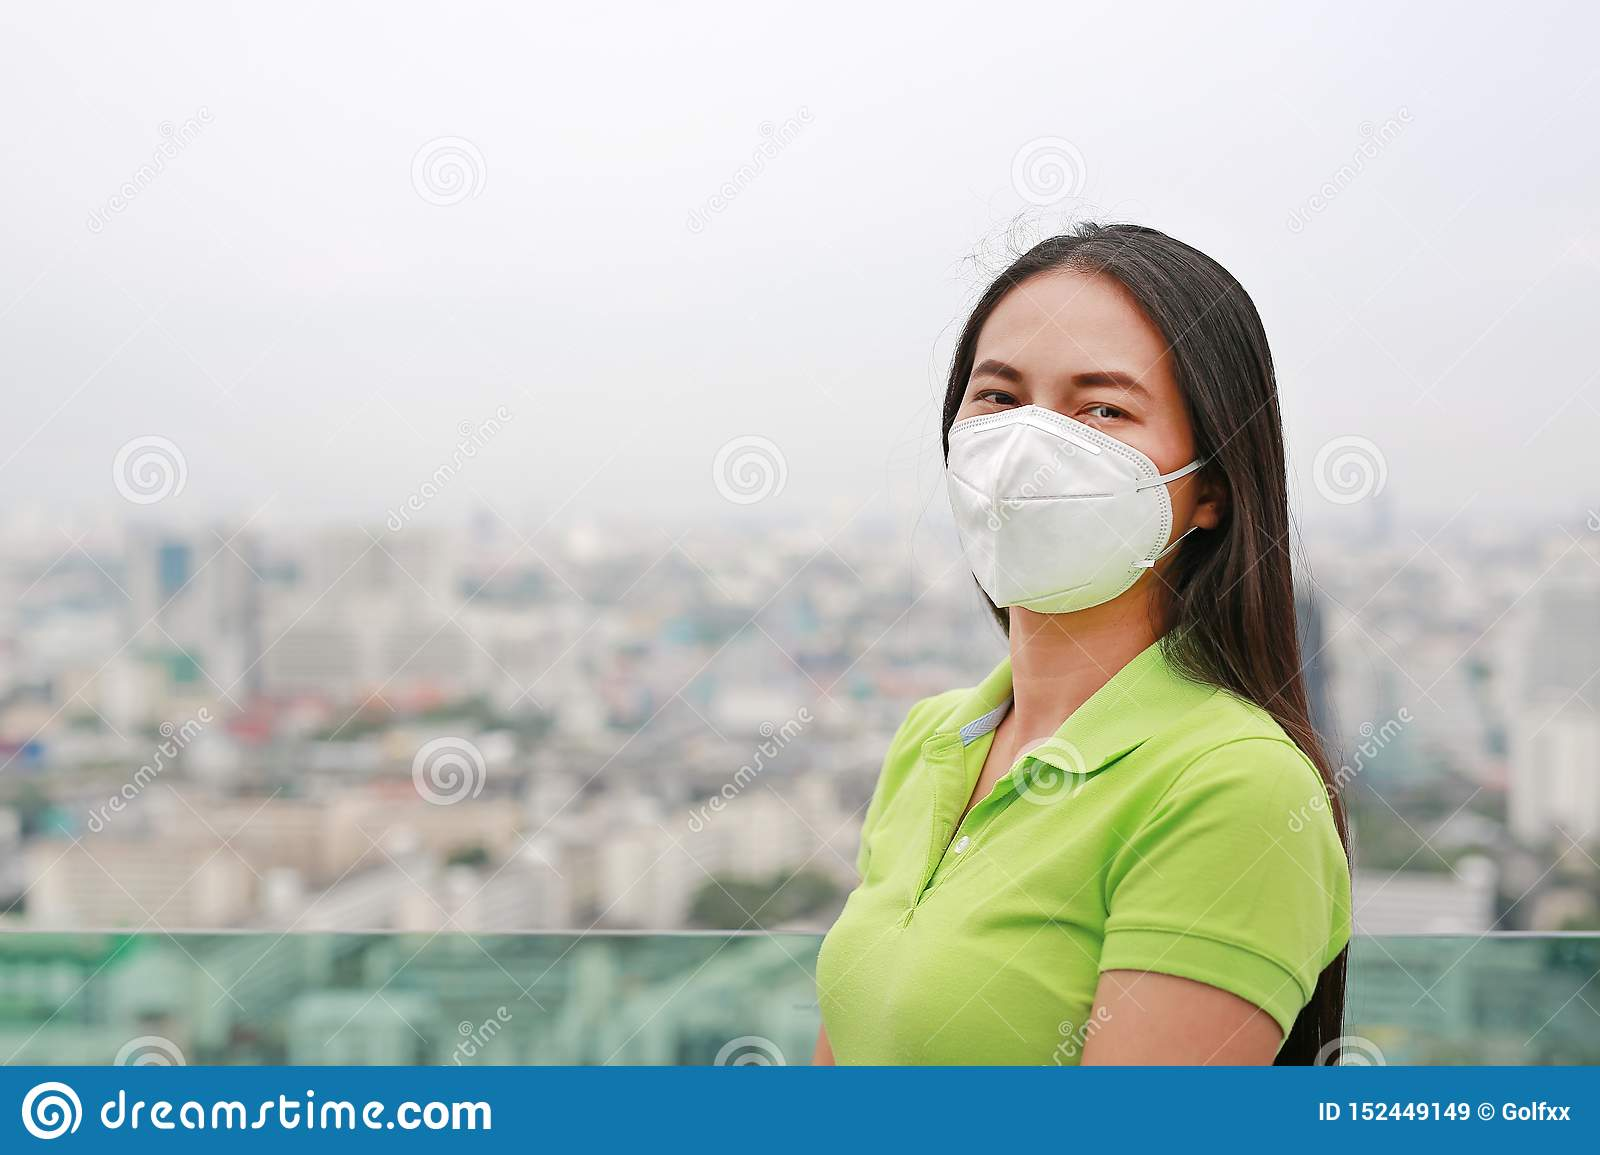 Asian woman wearing a protection mask against PM 2.5 air pollution in Bangkok city. Thailand